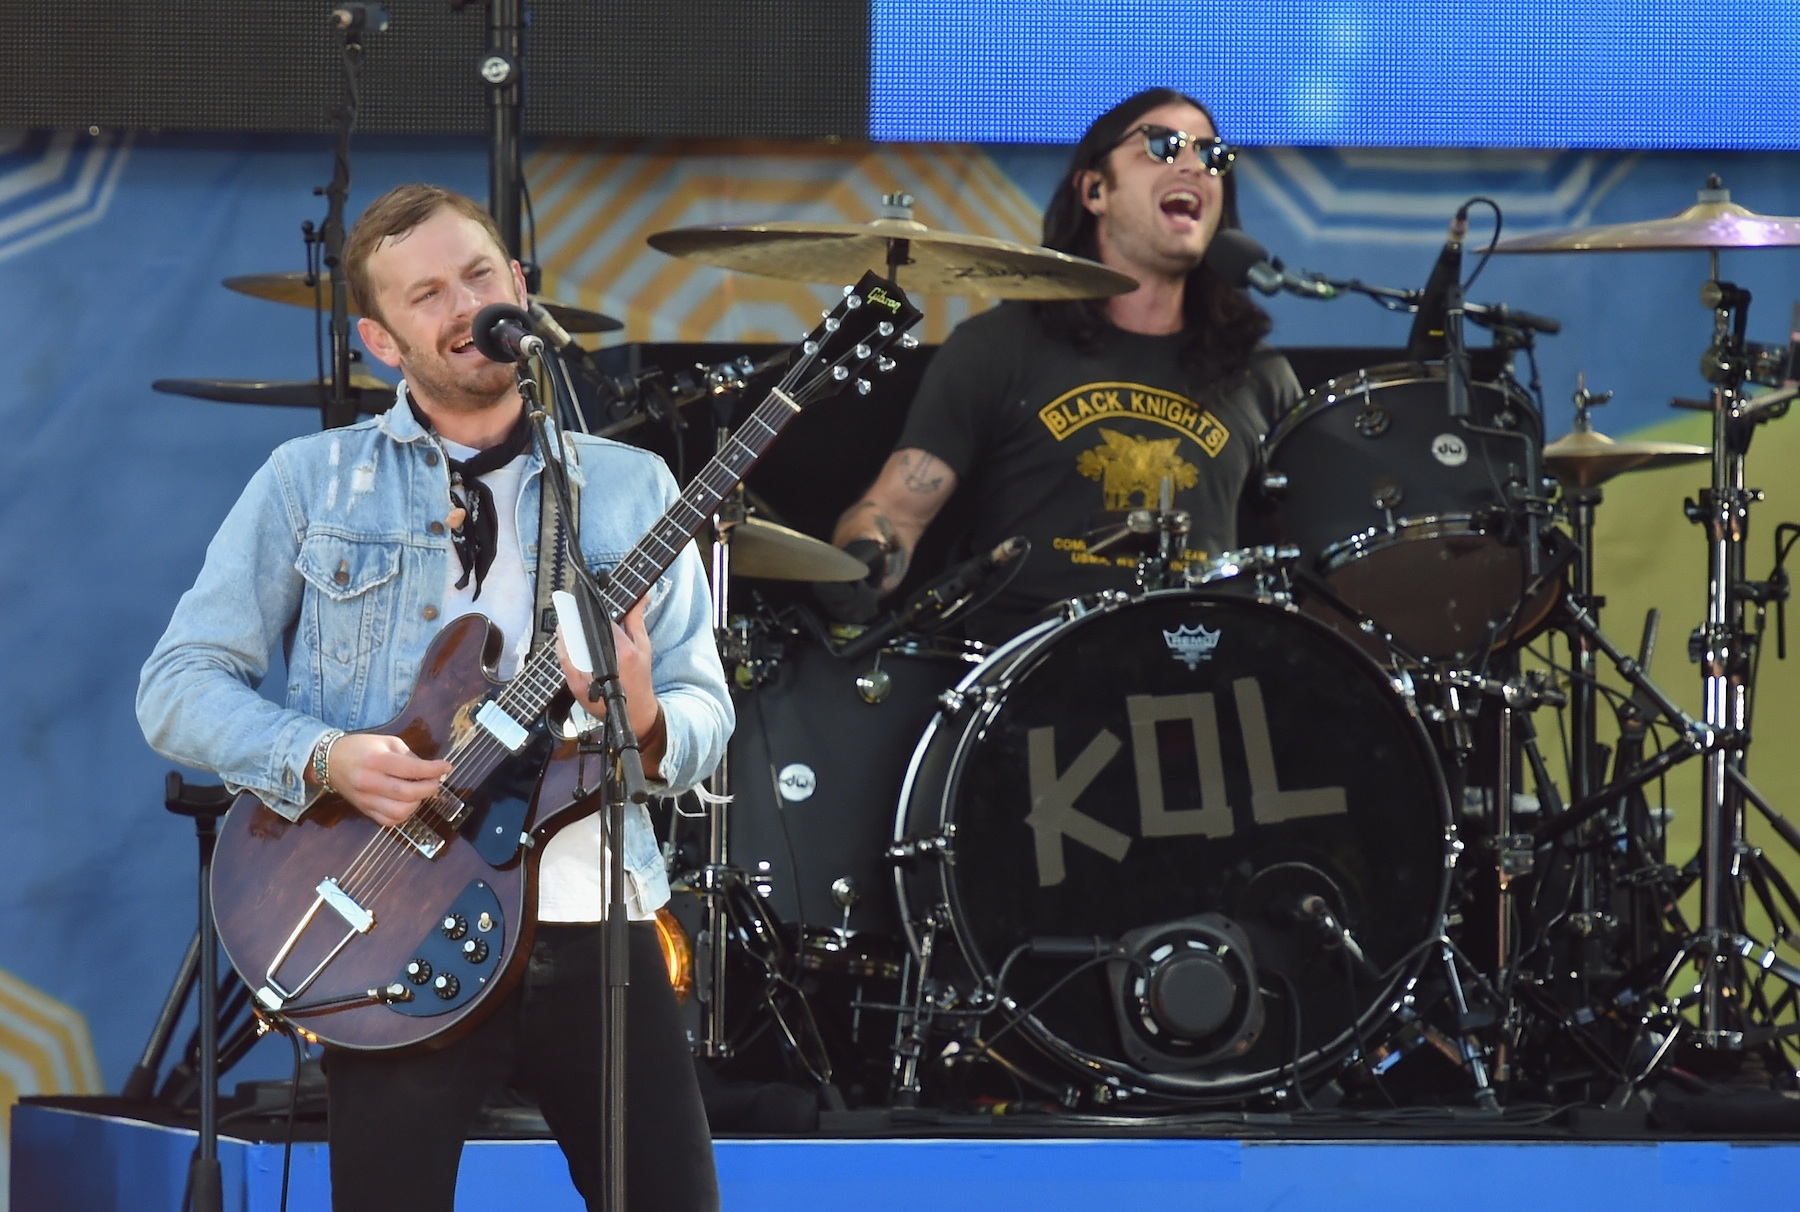 Kings of Leon's Nathan Followill Injured in Tour Bus Accident